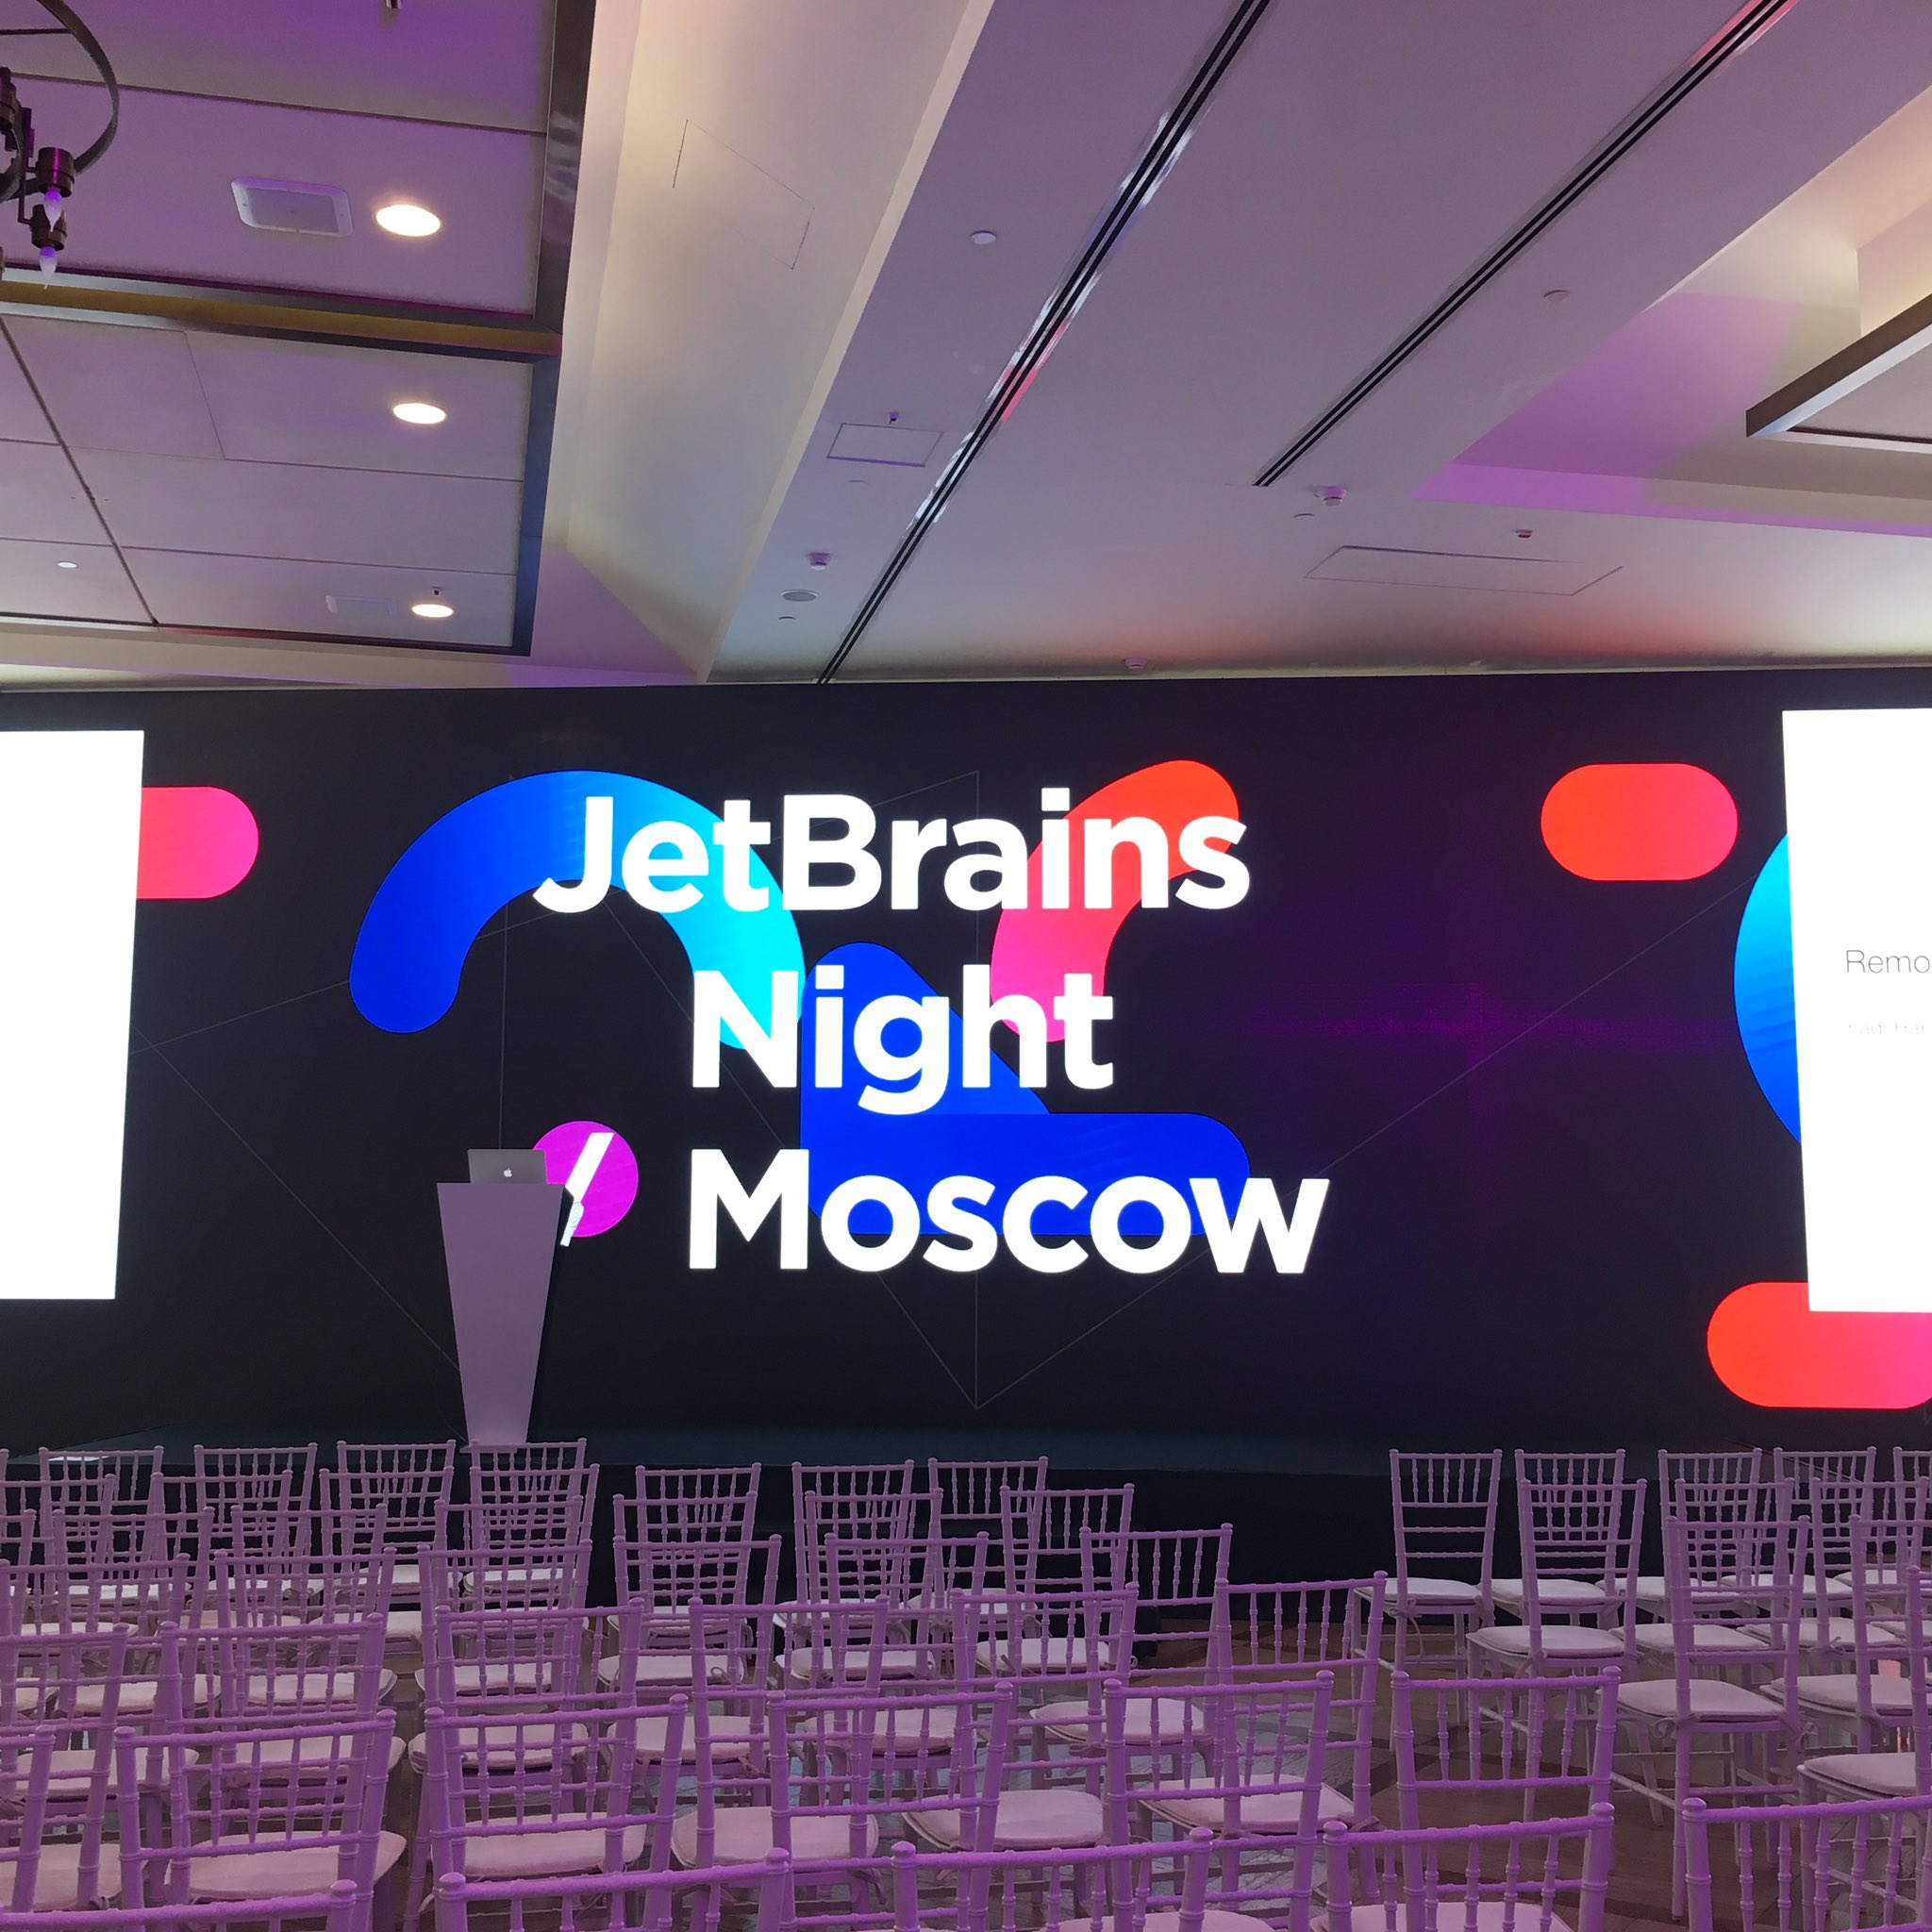 JetBrains Night Moscow 2019